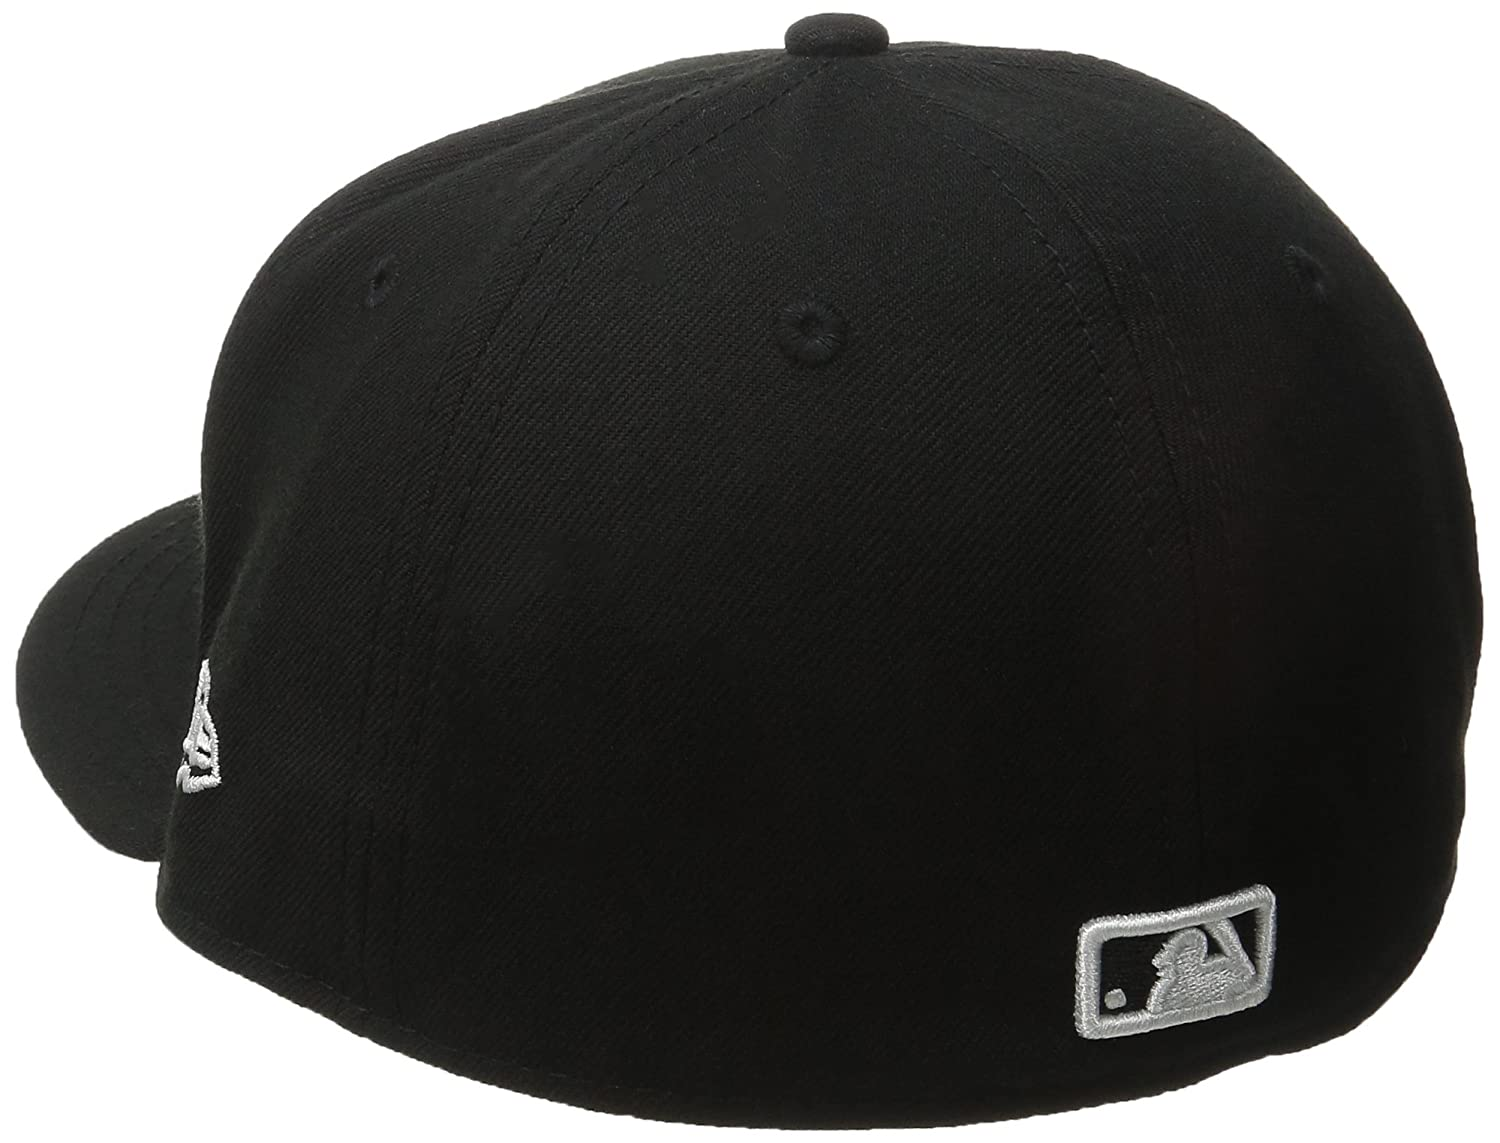 New Era Men s 59FIFTY Los Angeles Dodgers Black Hat at Amazon Men s  Clothing store  b54f40edf4fe